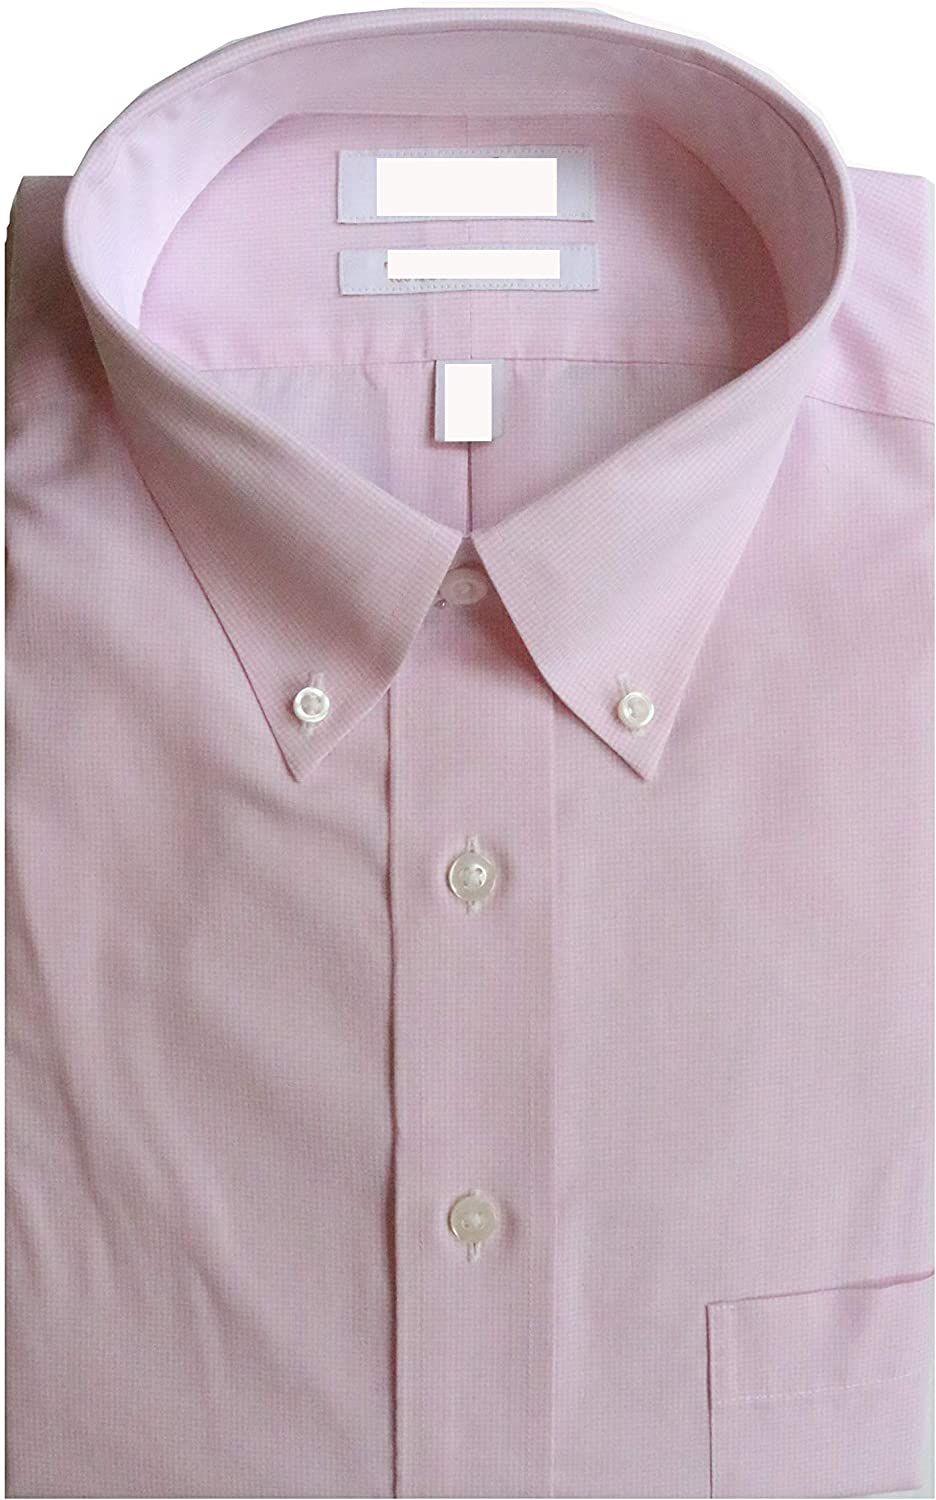 Gold Label Roundtree & Yorke Non-Iron Fitted Button Down Plaid Dress Shirt G16A0136 Pink